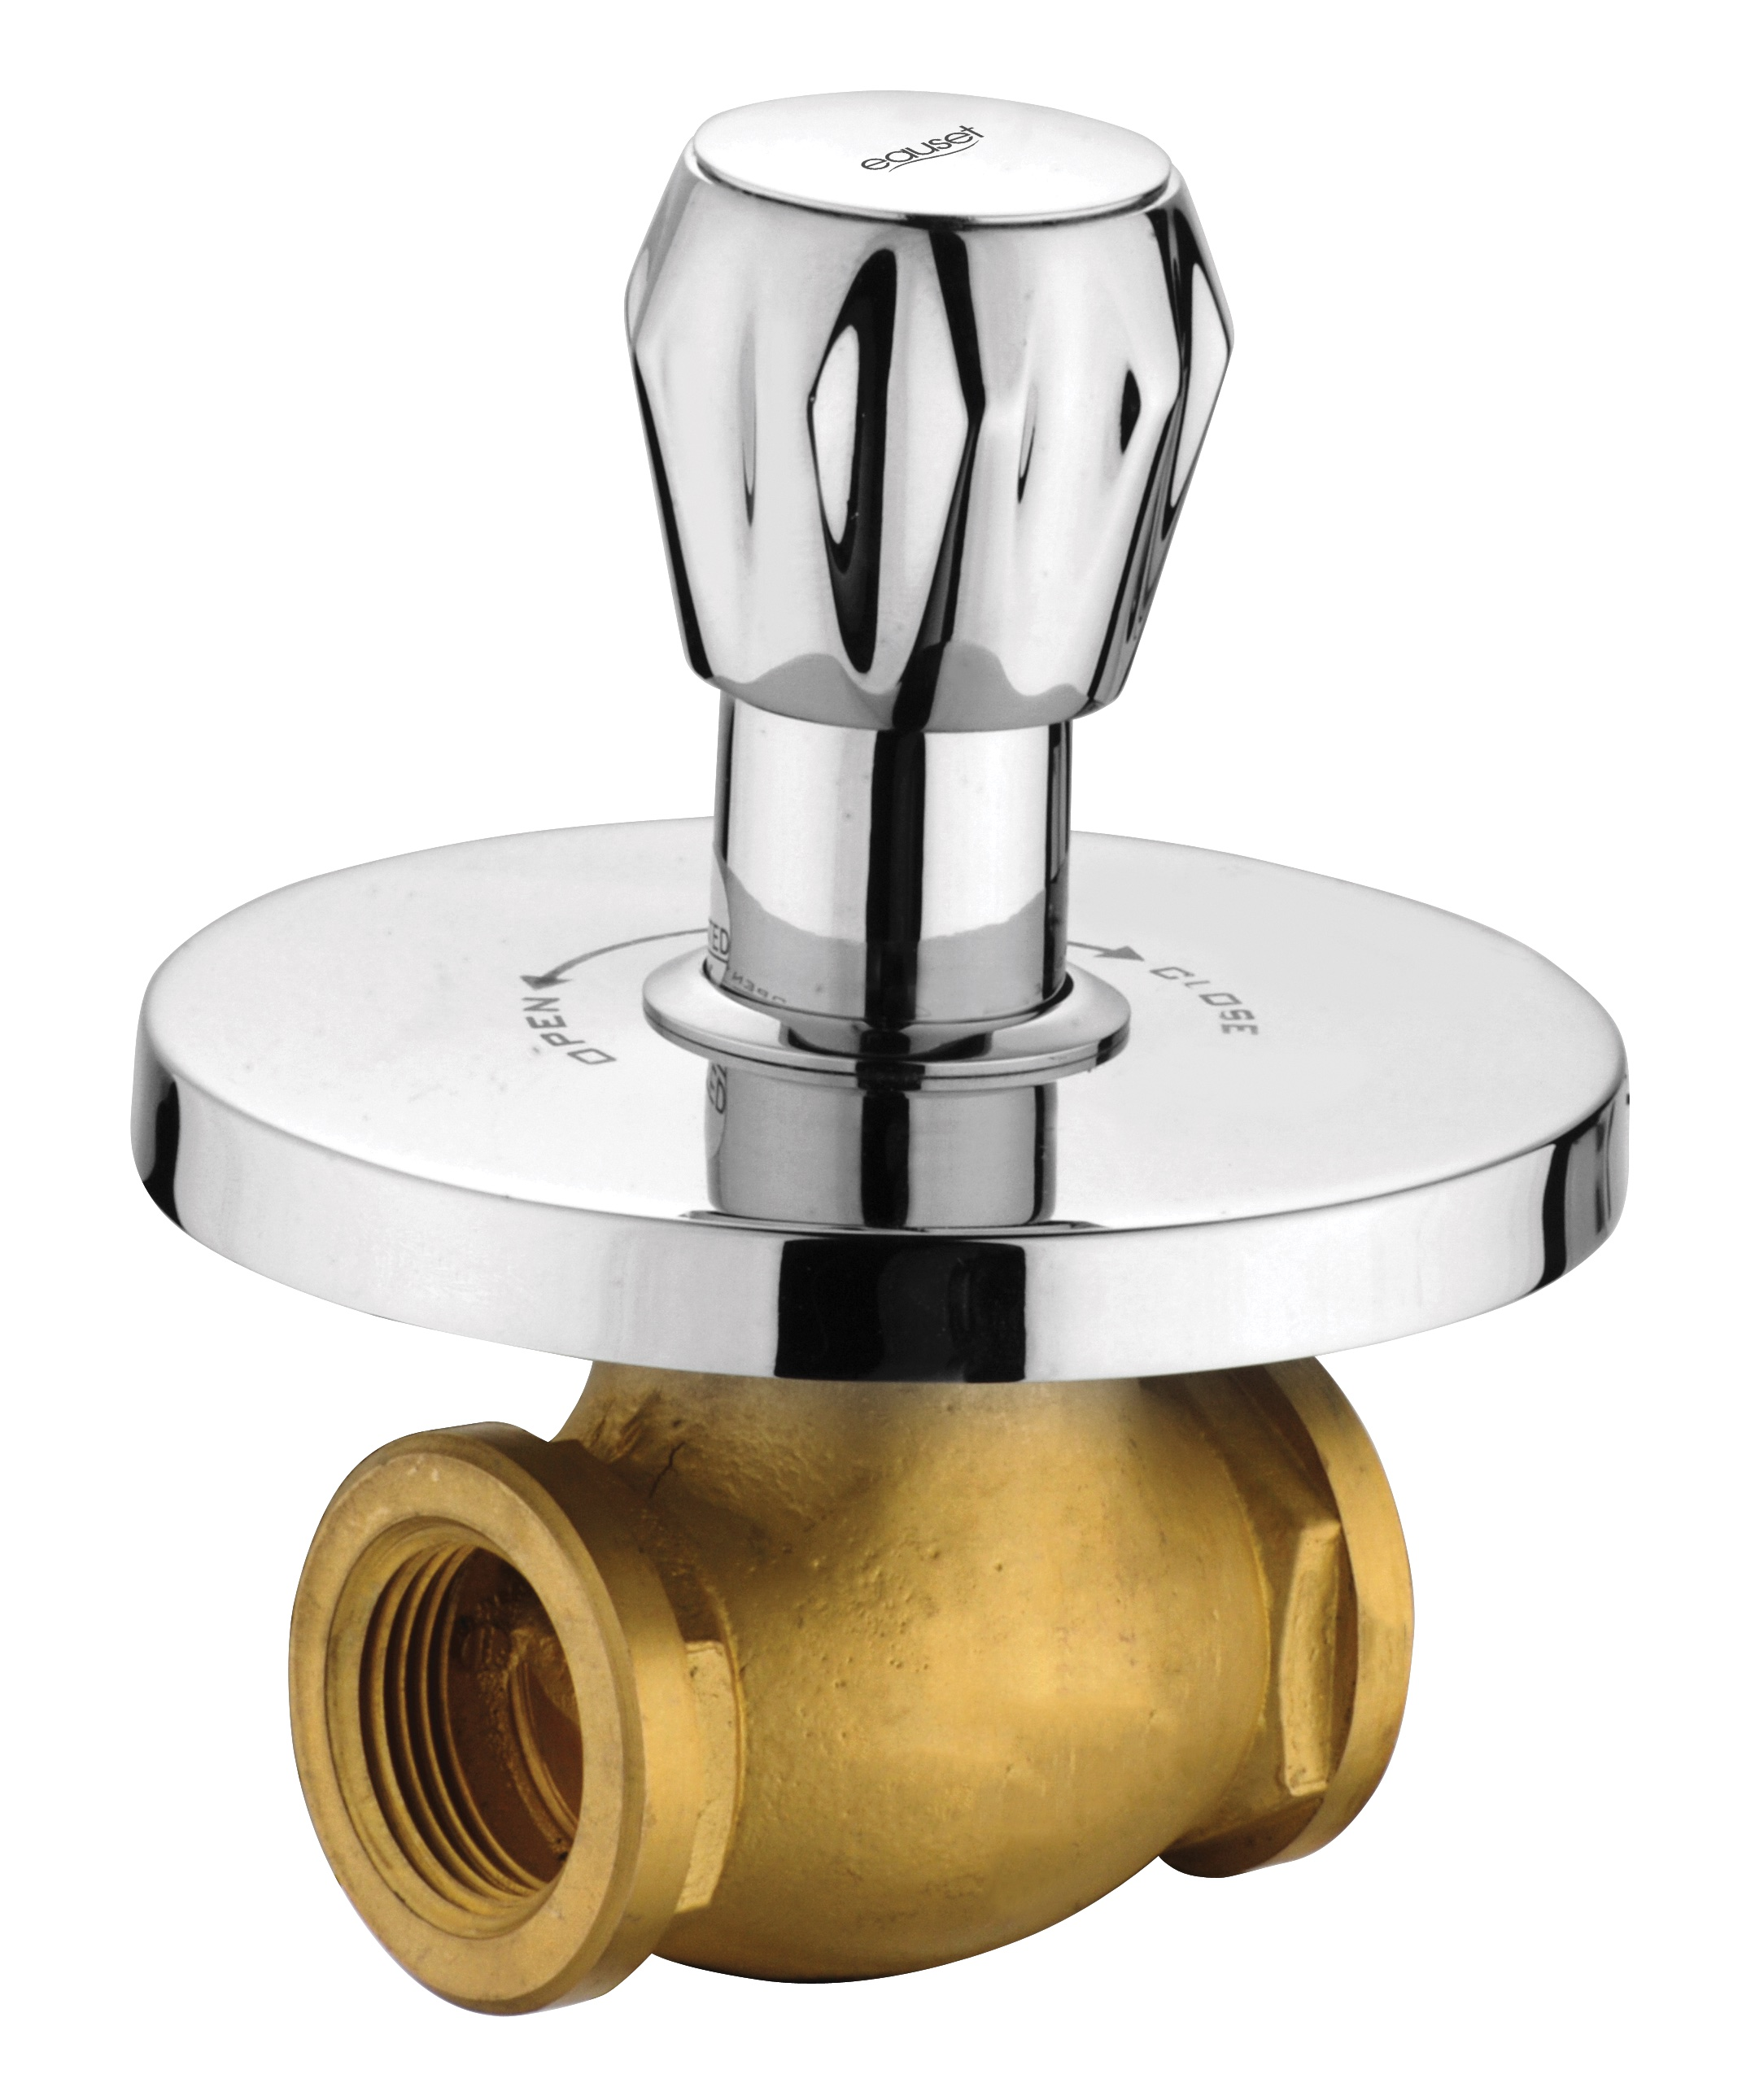 Concealed Stop Cock 25mm With Wall Flange